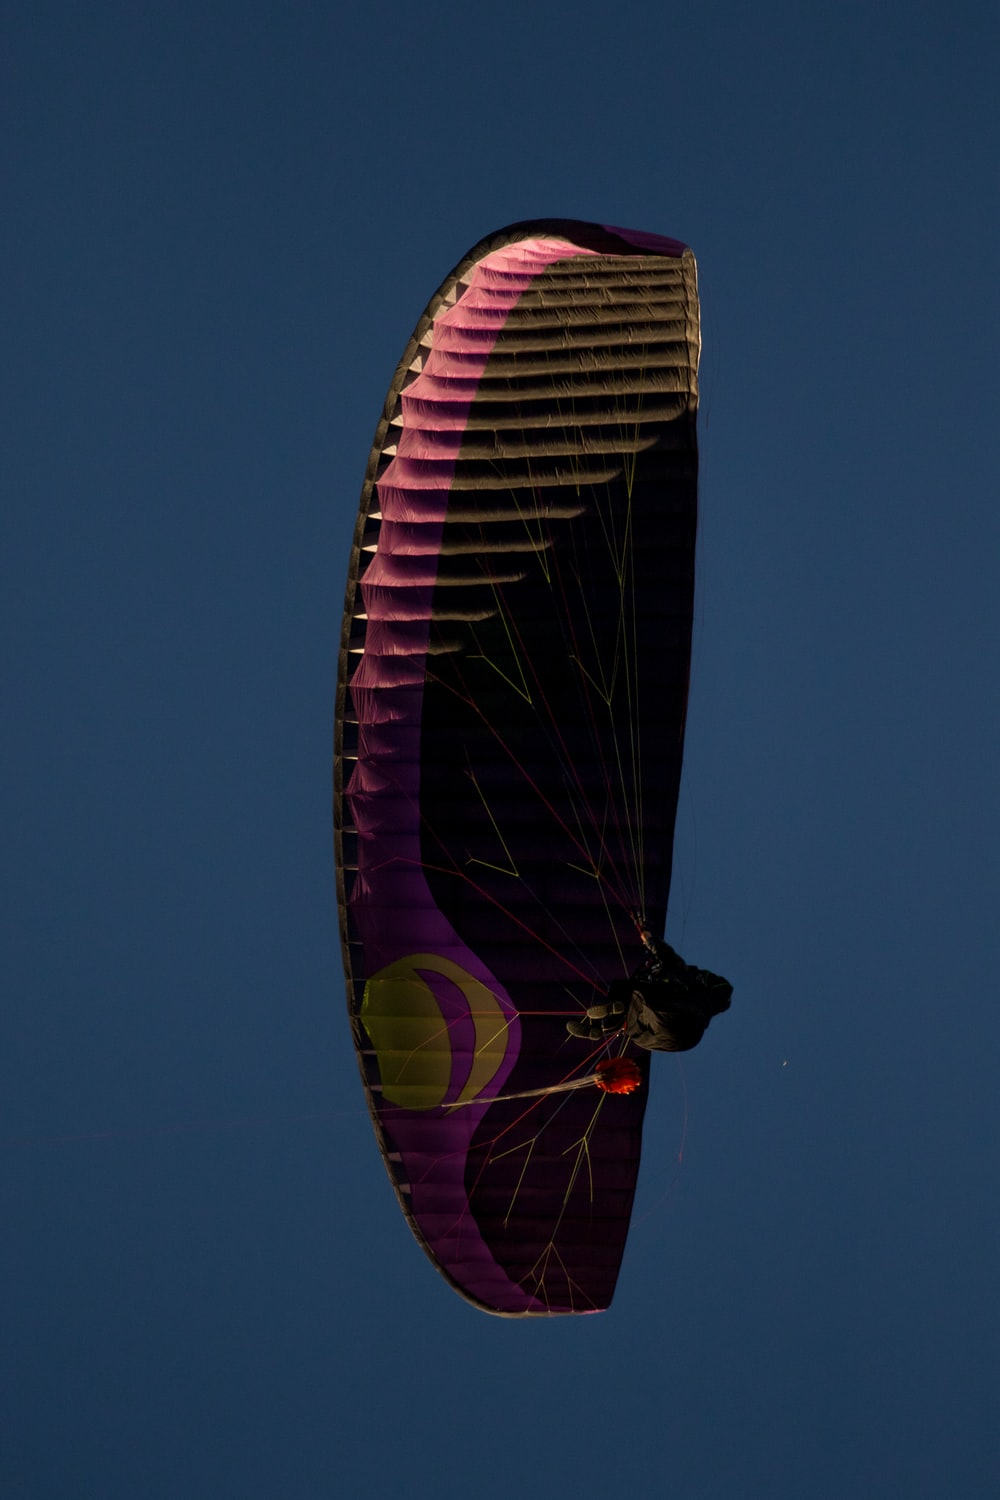 low-angle photography of person riding parachute in sky